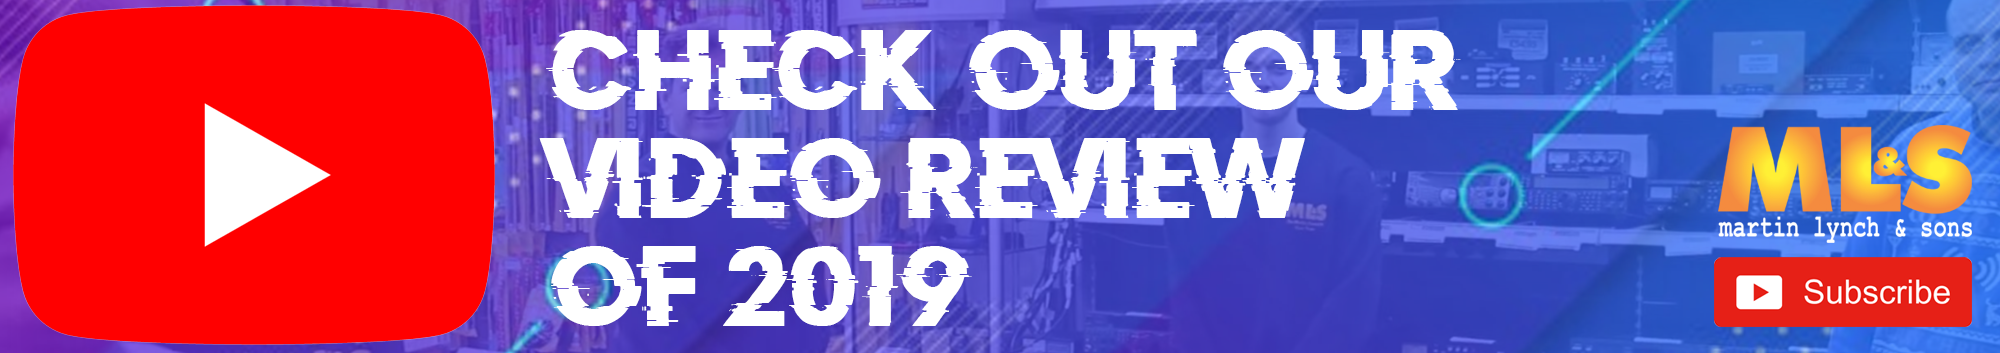 CHECK OUT OUR VIDEO REVIEW OF 2019